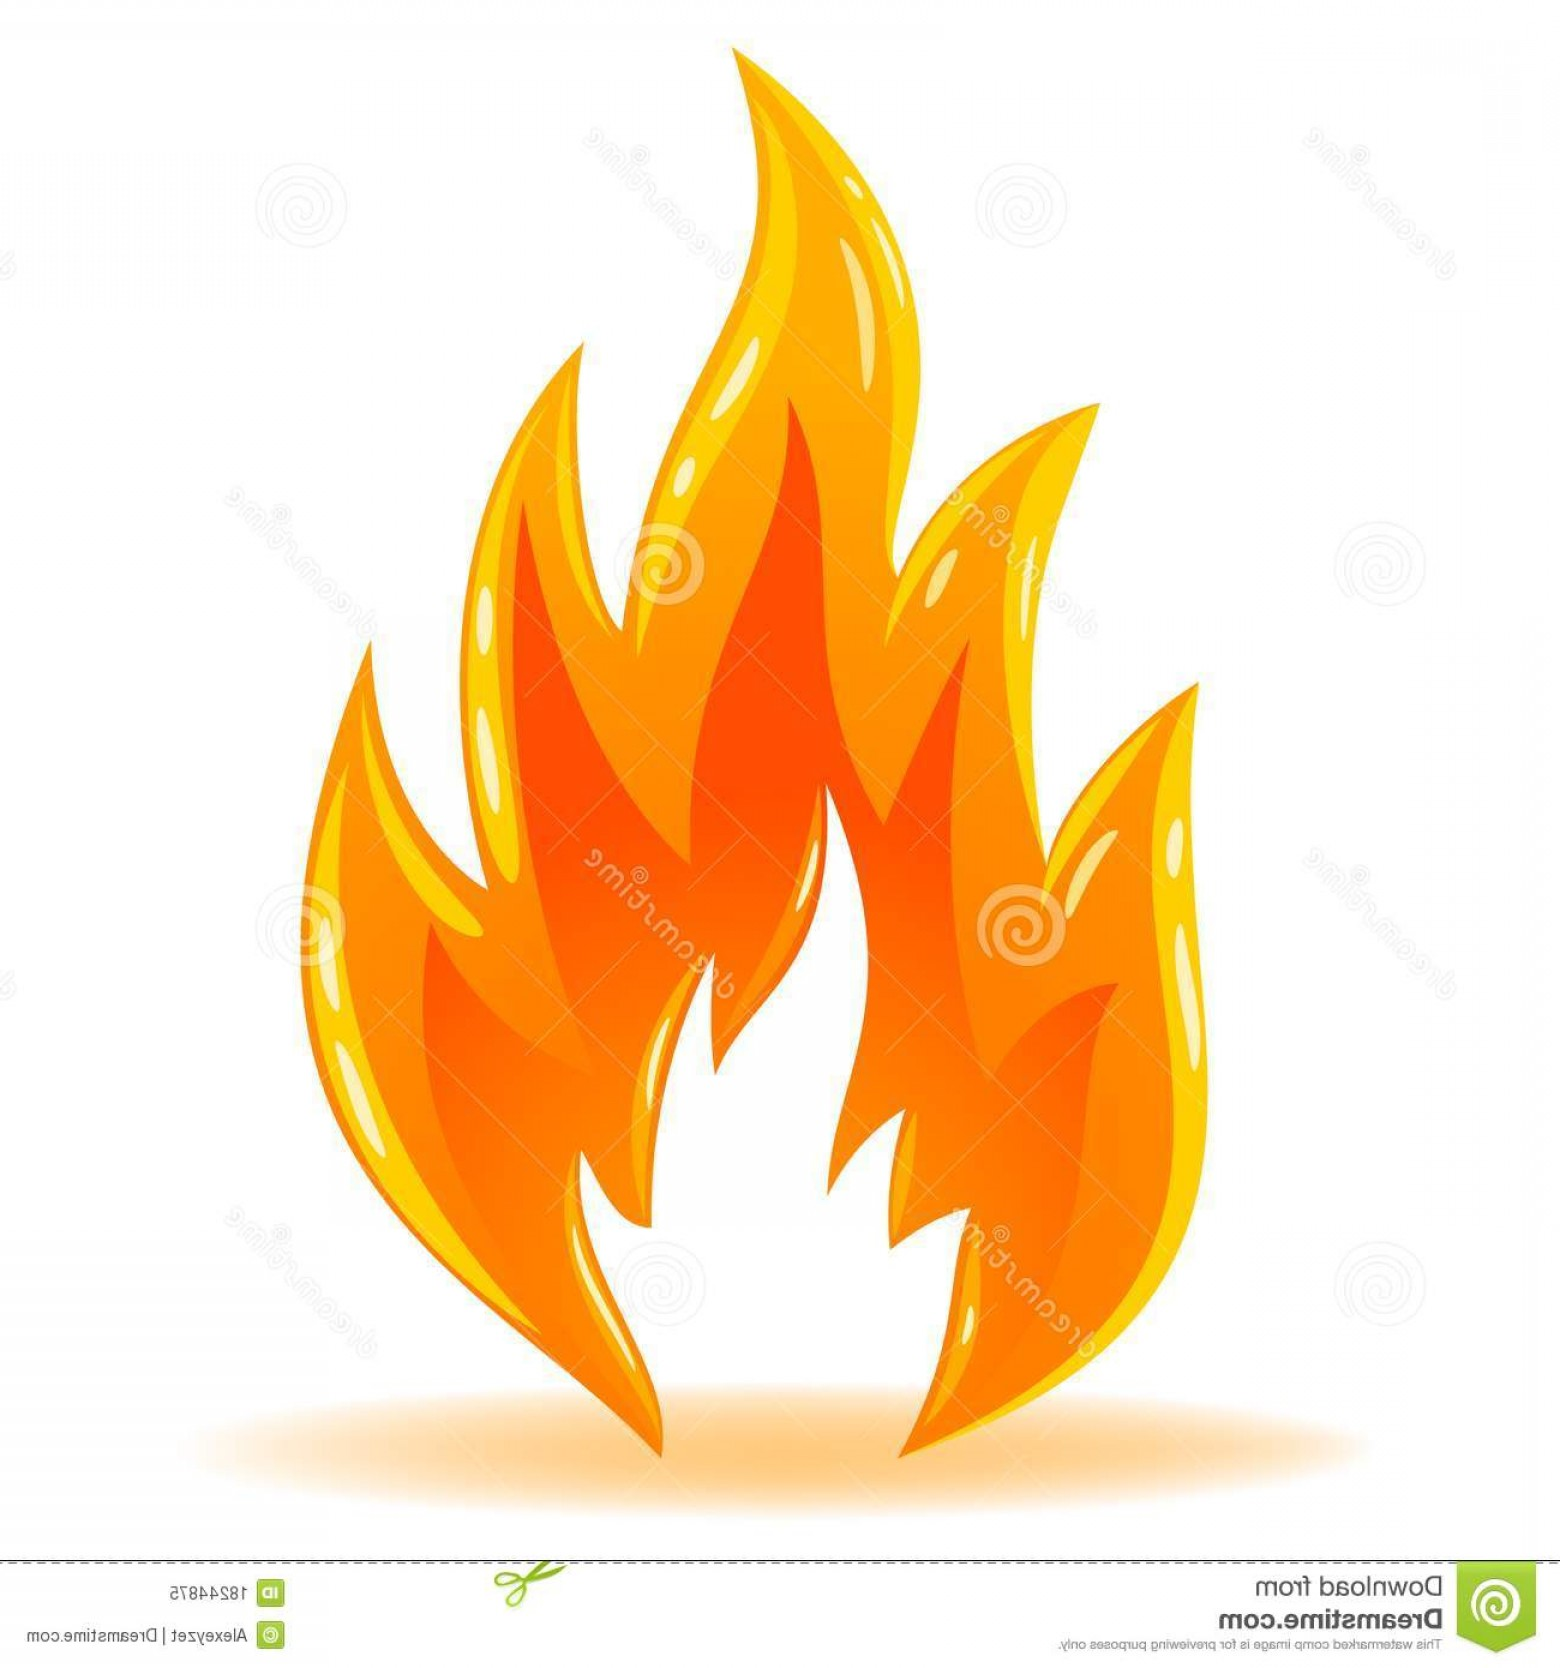 Fire Clip Art Vector: Royalty Free Stock Photo Vector Symbol Fire Shiny Flame Image